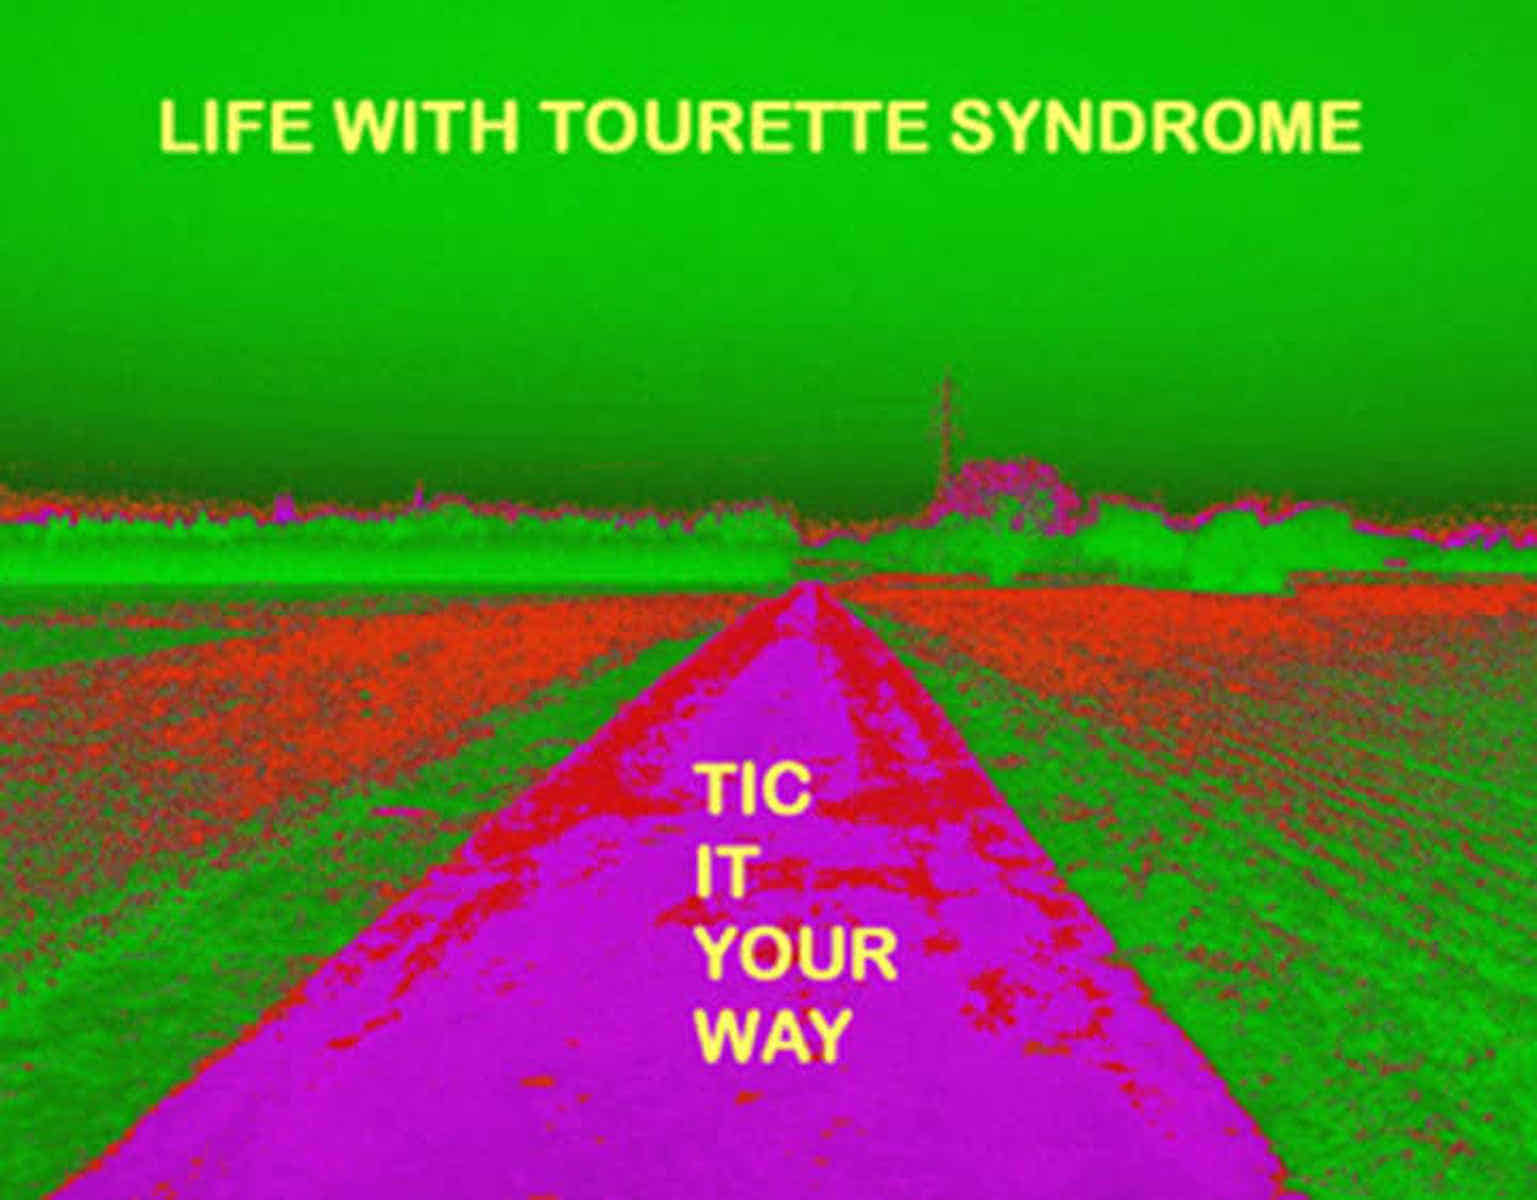 Grafik: Postkarte 11: Life With Tourette Syndrome: Tic It Your Way.